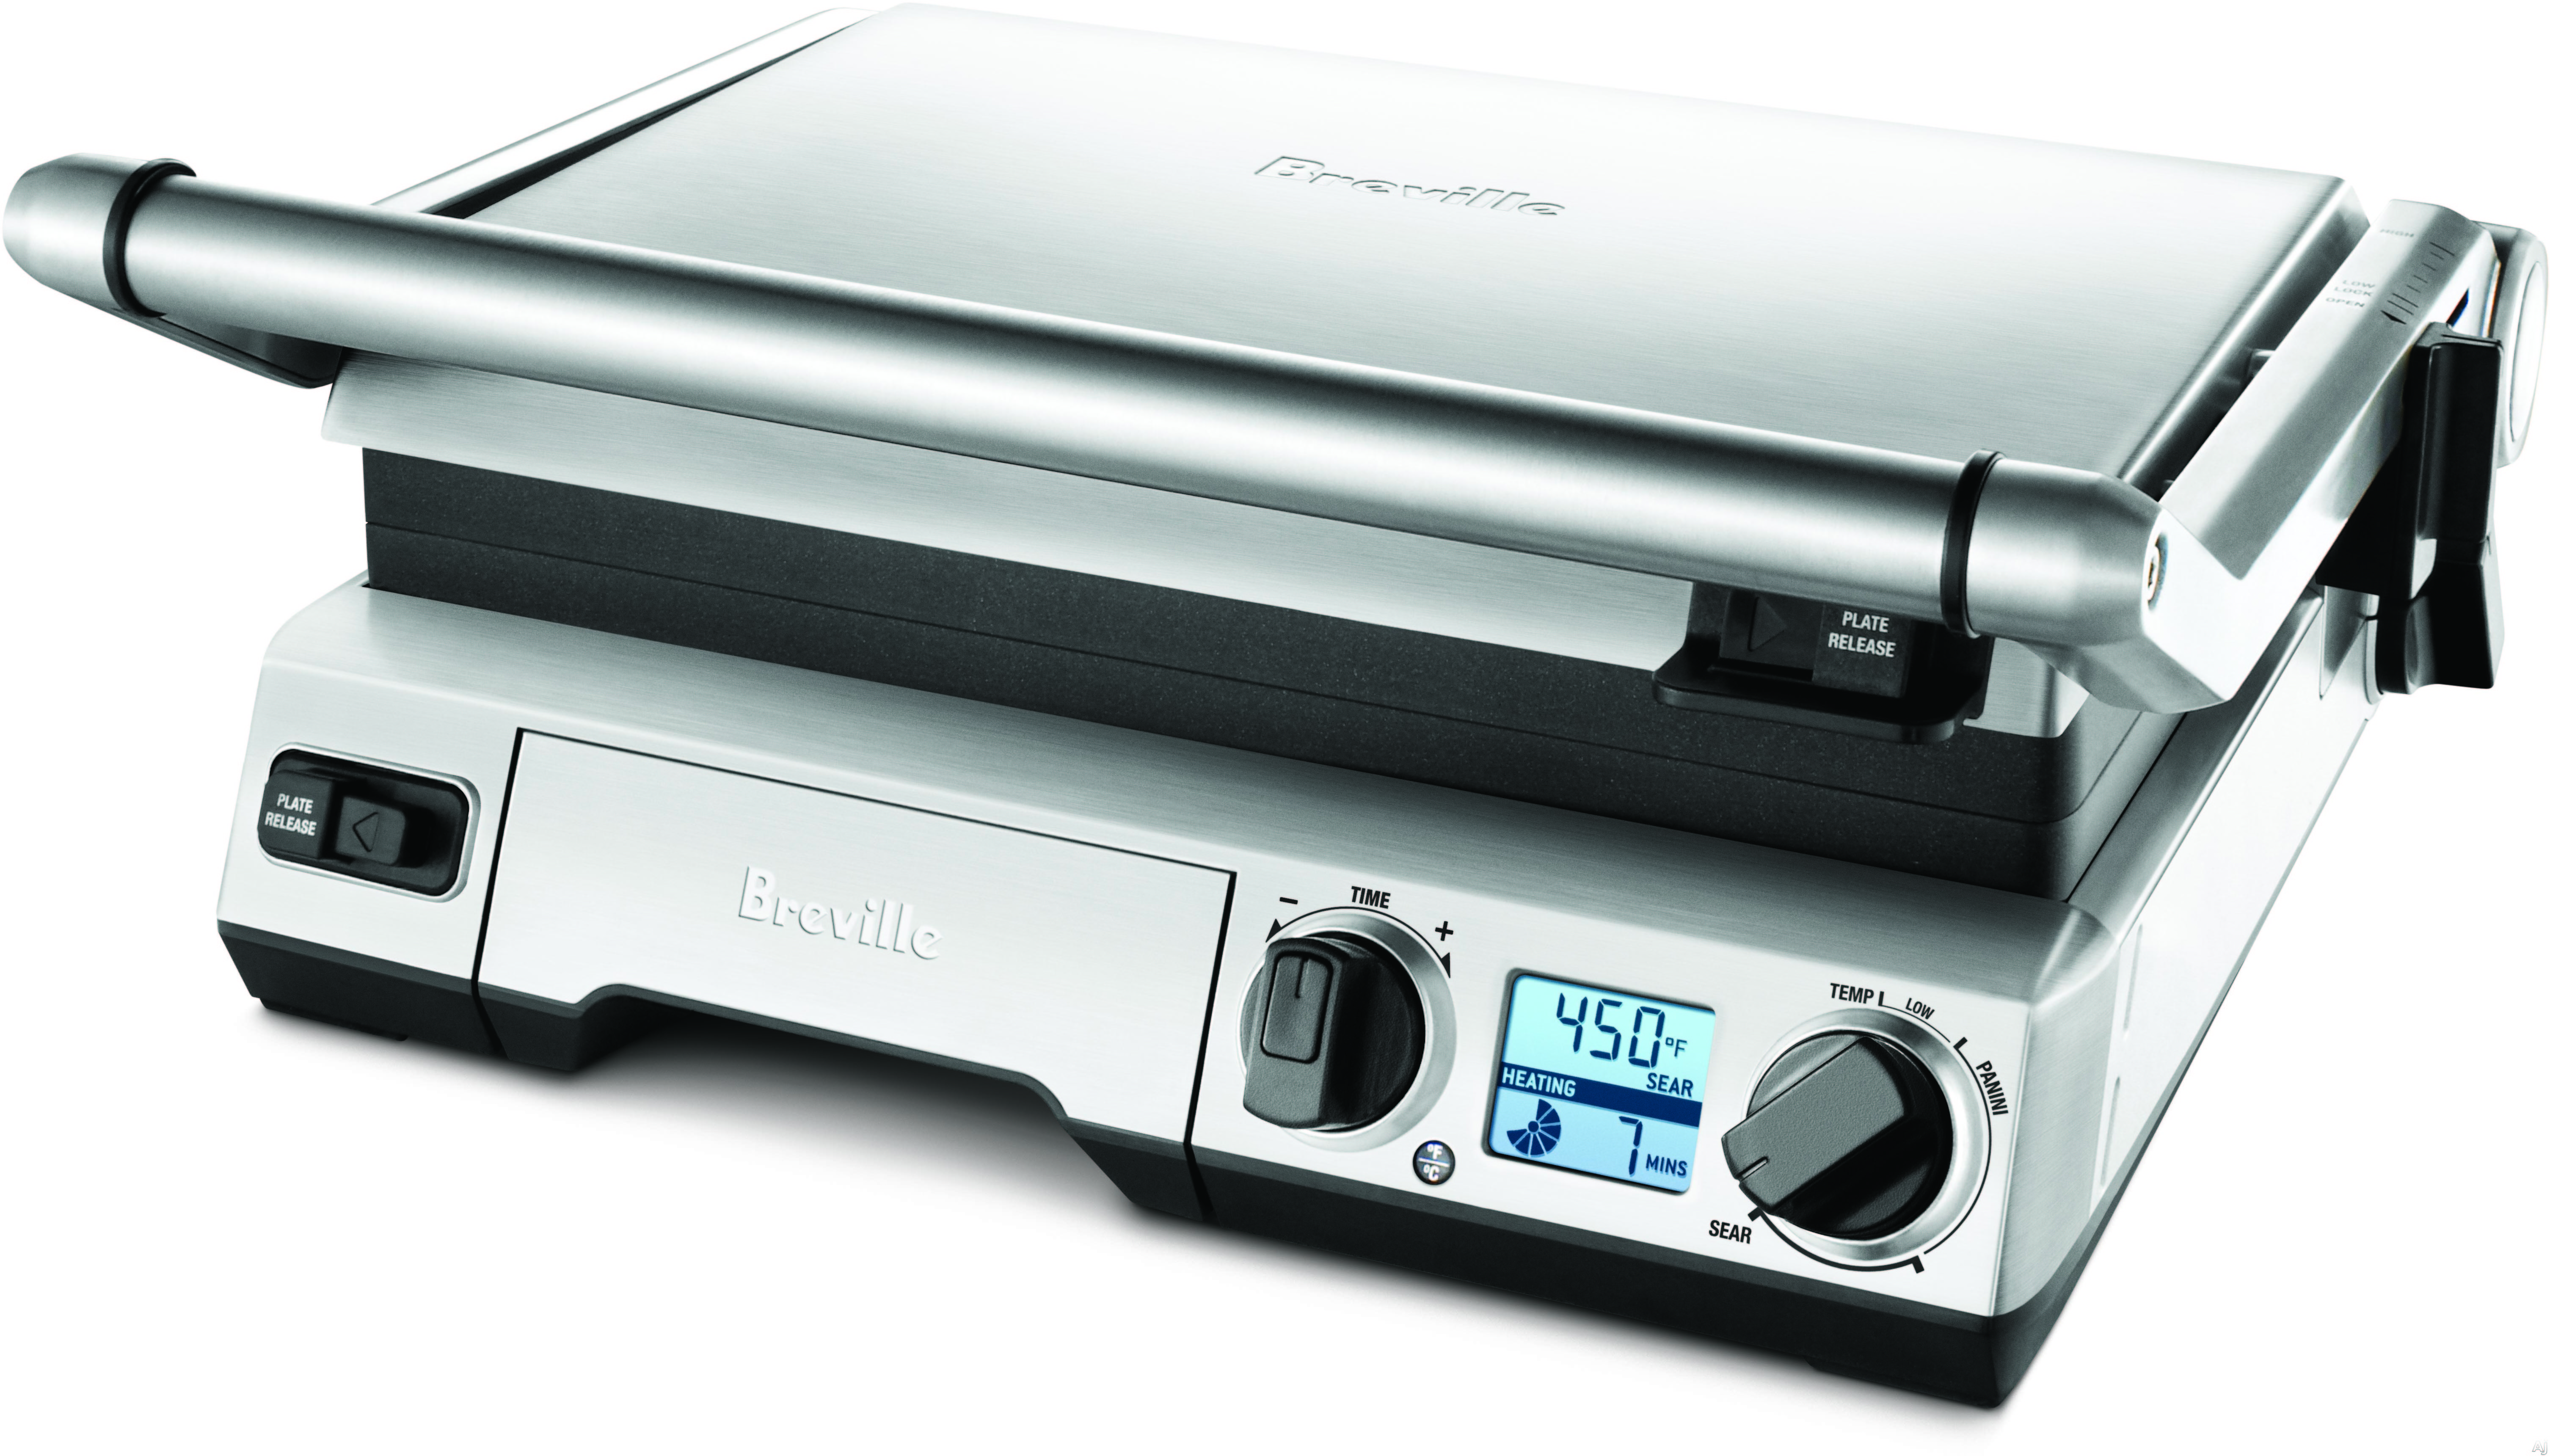 """Image of Breville BGR820XL Electronic Smart Grillâ""""¢ with Element IQâ""""¢, Adjustable Height Control, Adjustable Plate Tilt, Non-Stick Plates, Auto-Off, LCD Display, Removable Dishwasher Safe Plates and 1800W Power"""